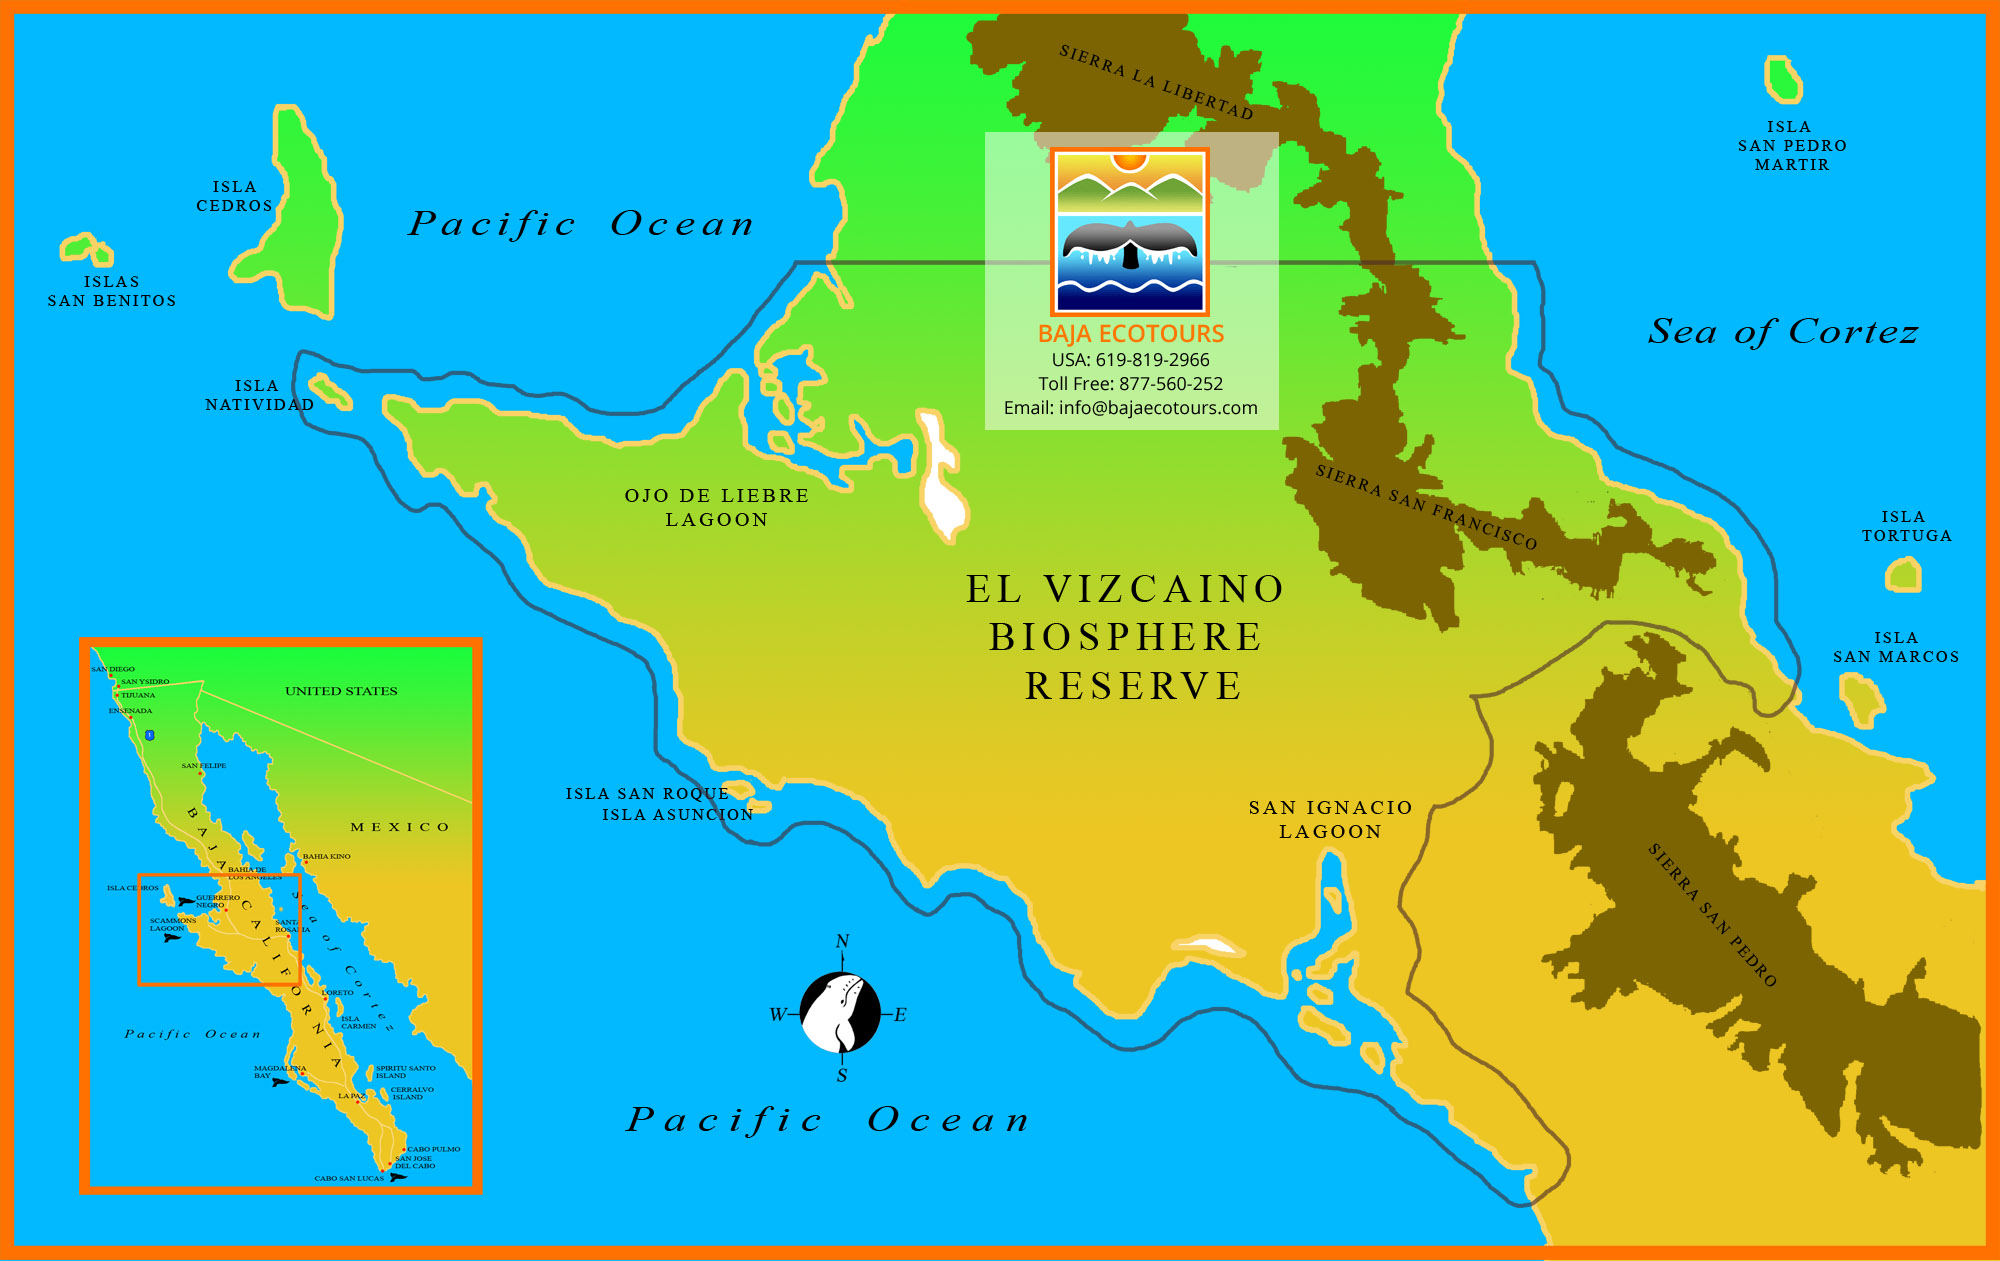 Baja Ecotours | Maps of Baja California